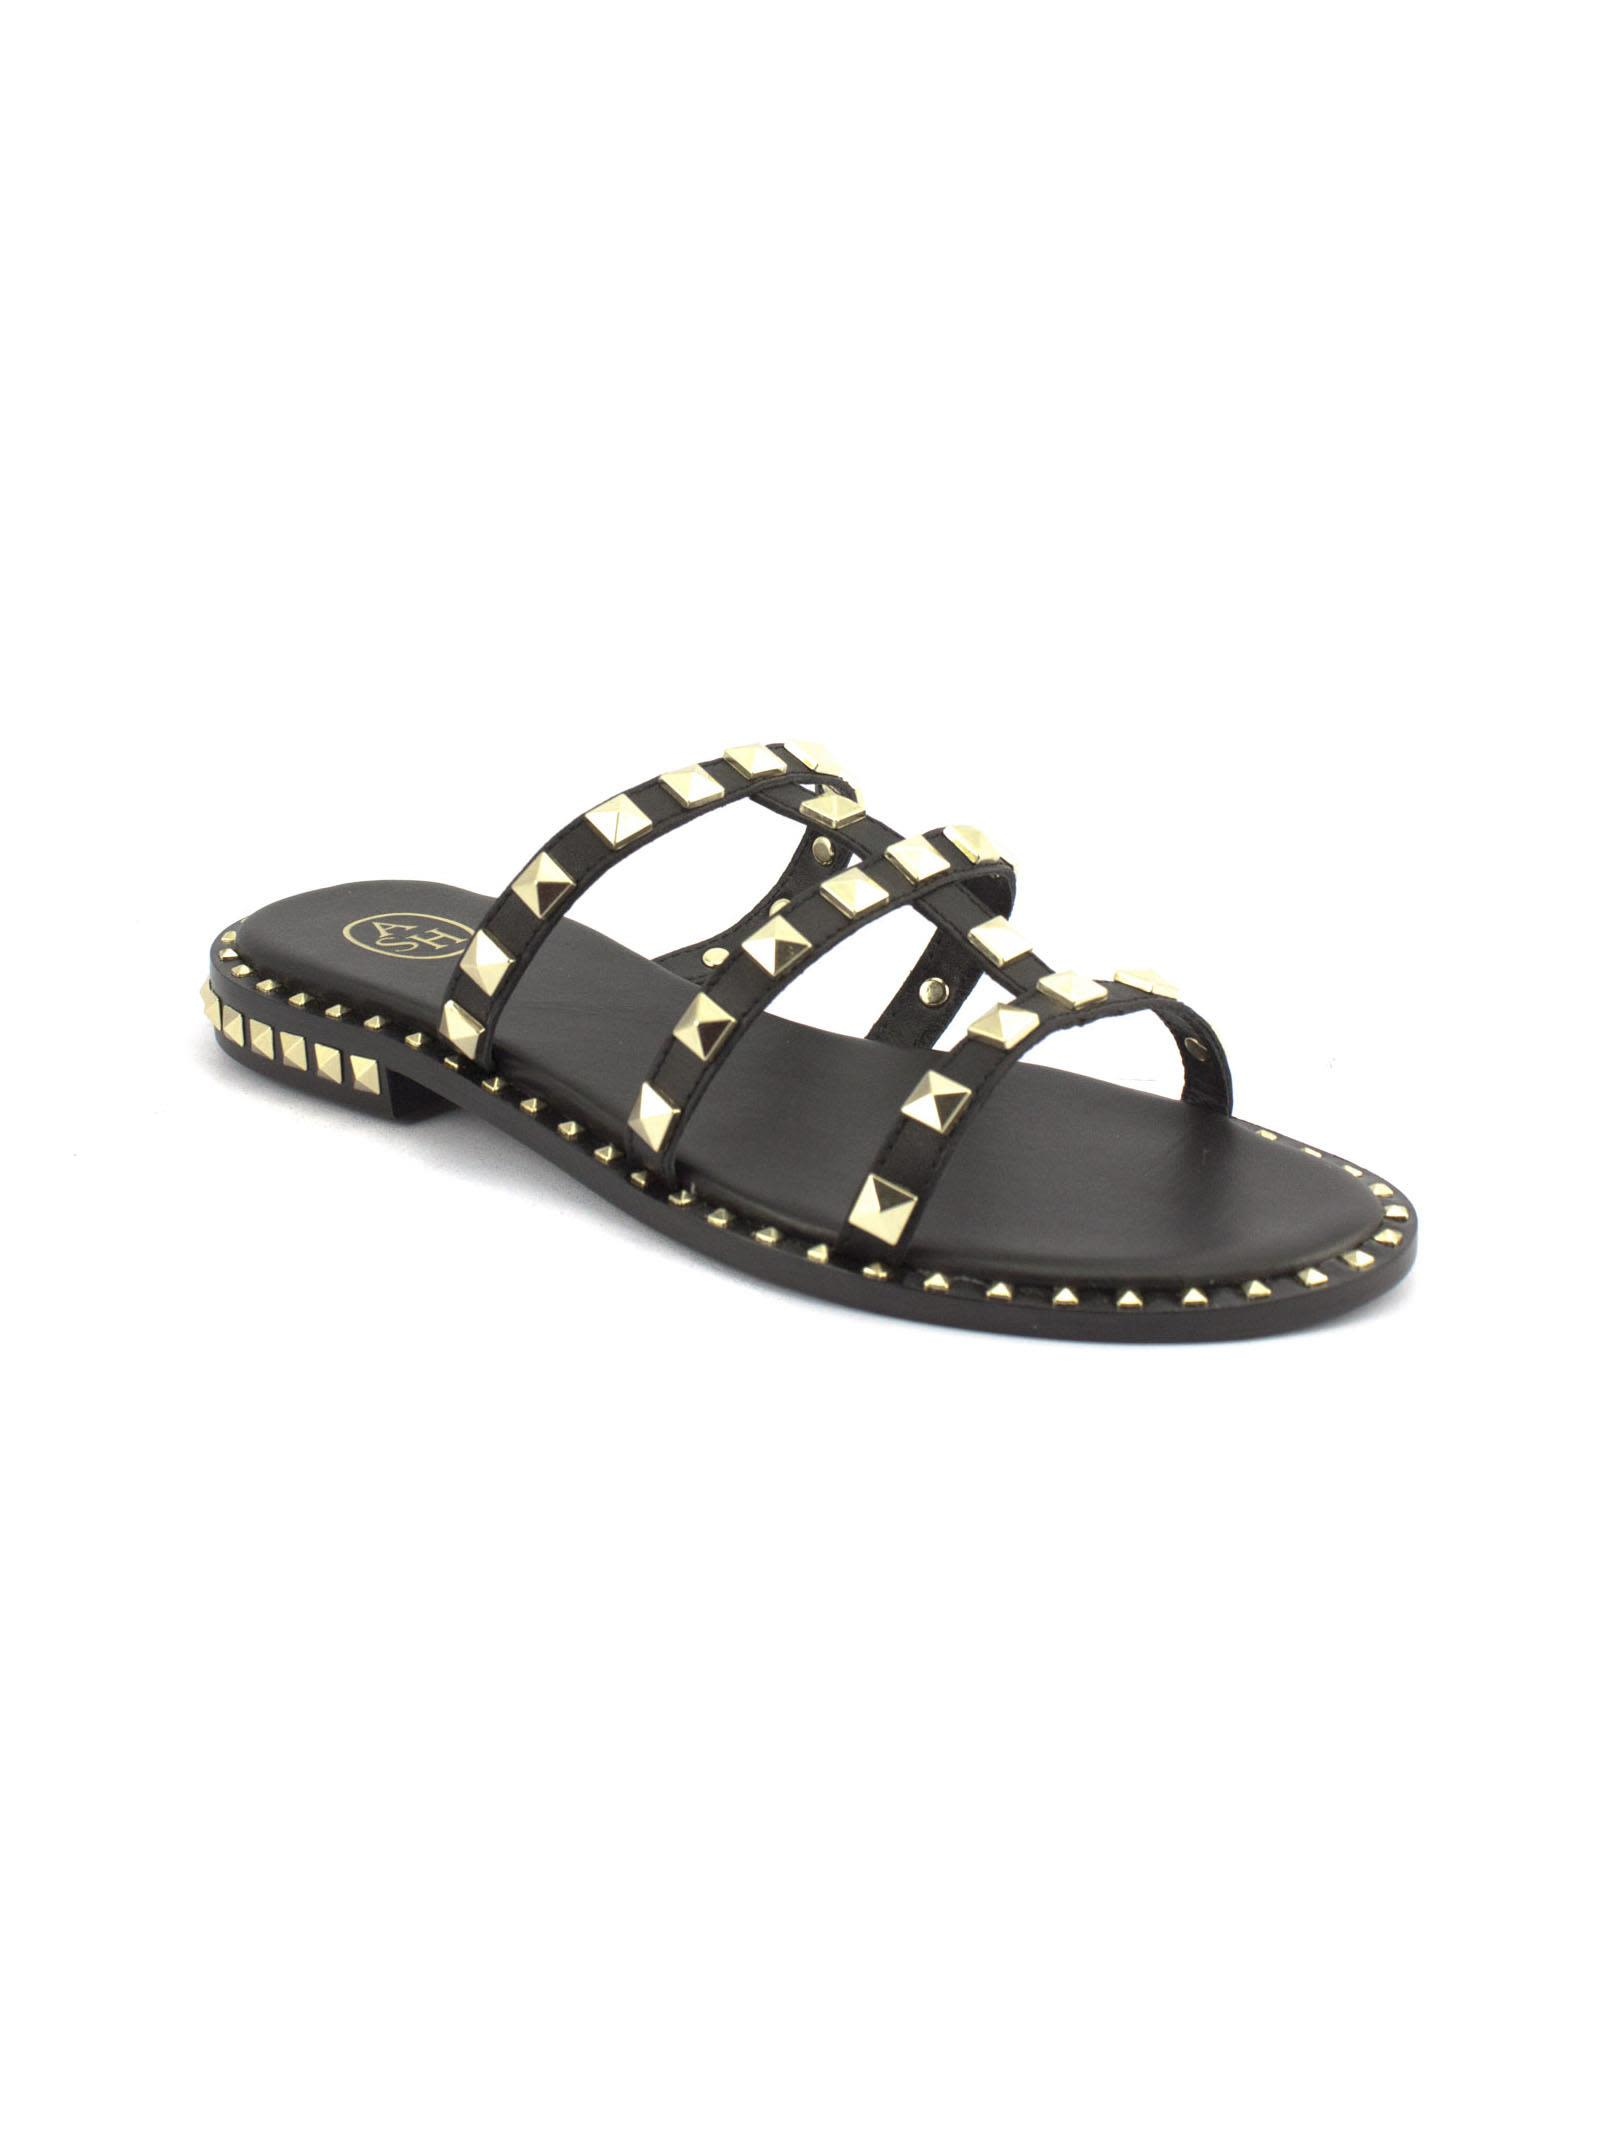 Clearance 100% Guaranteed Ash Pop Sandals In Black Leather With Studs Cheap Sale Visit New Cheap Footlocker Finishline xoWO0